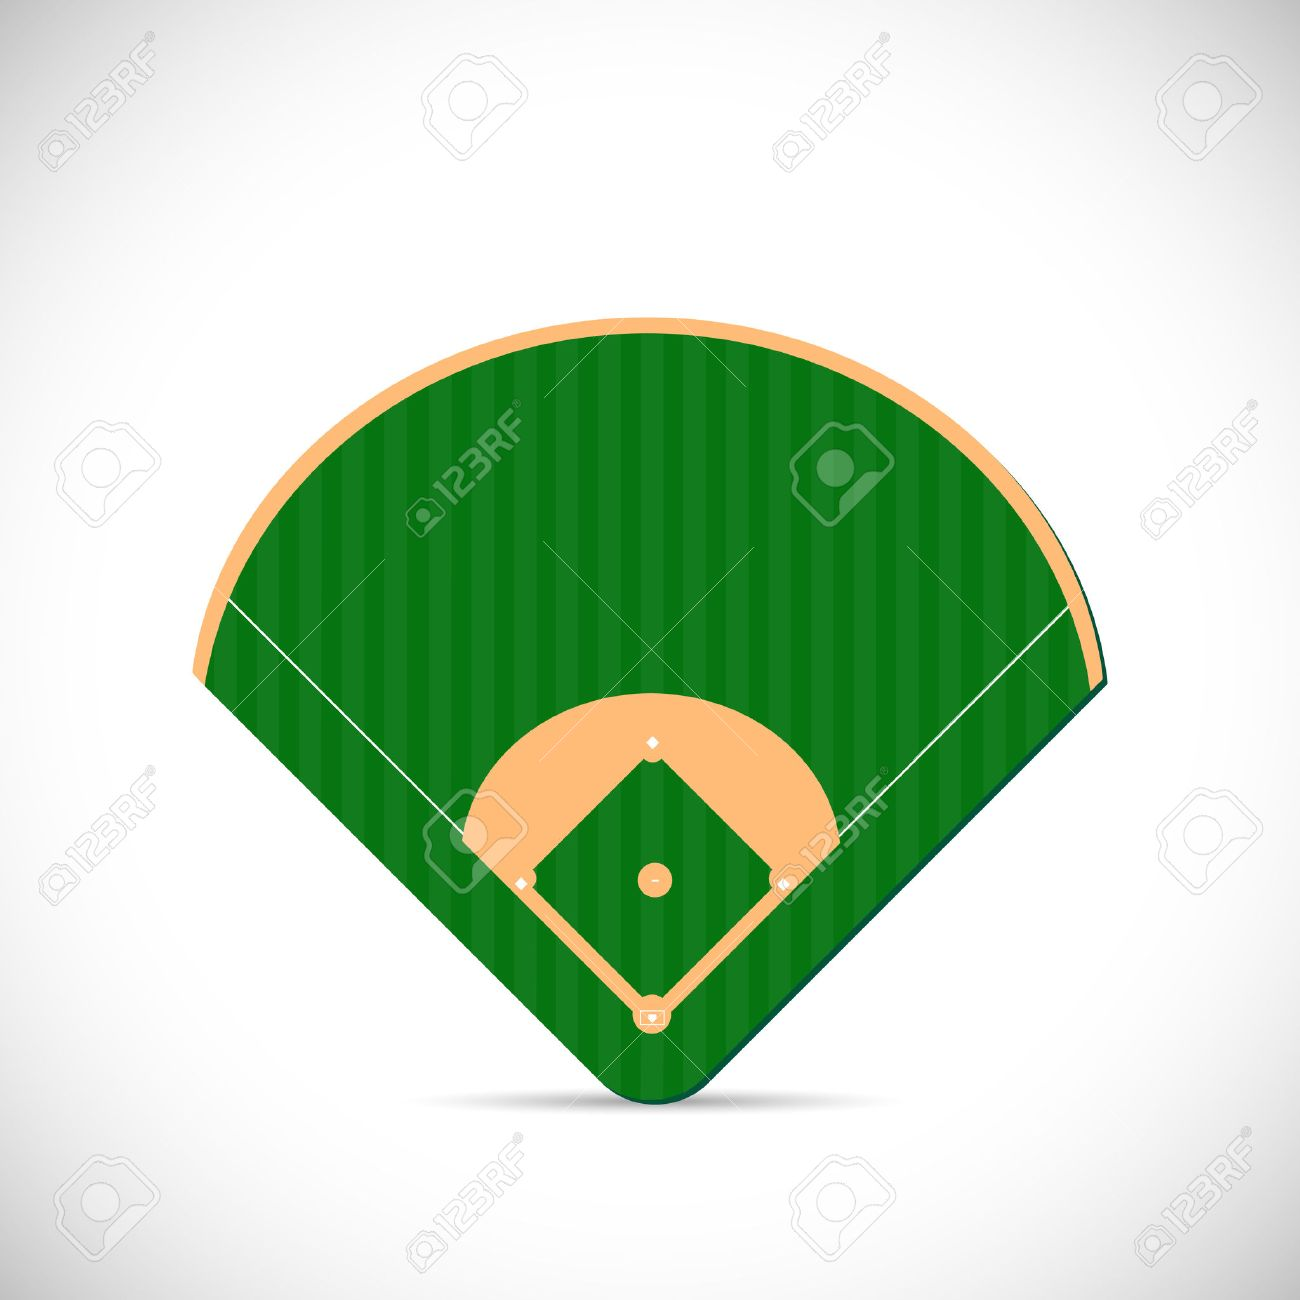 Illustration of a baseball field design isolated on a white background. - 34766488